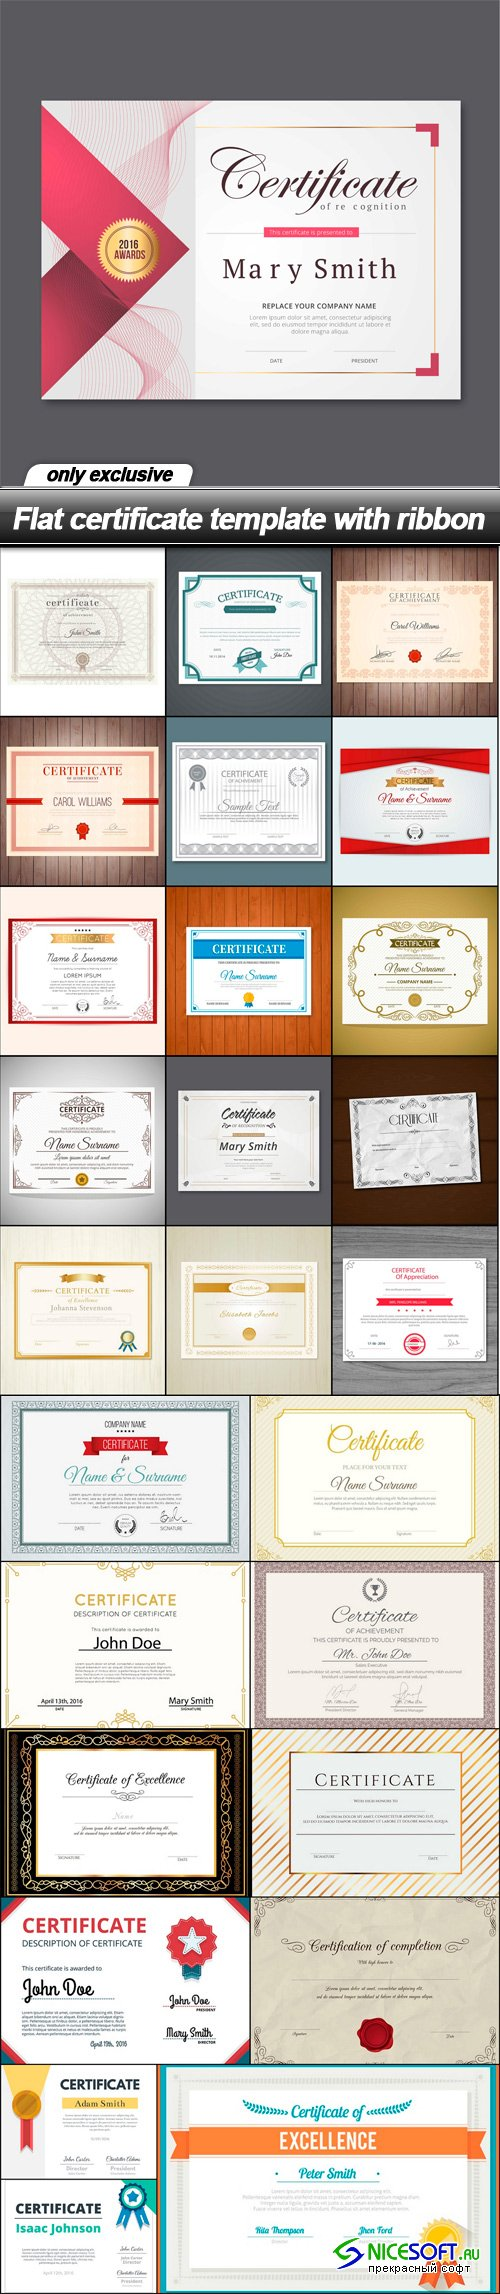 Flat certificate template with ribbon